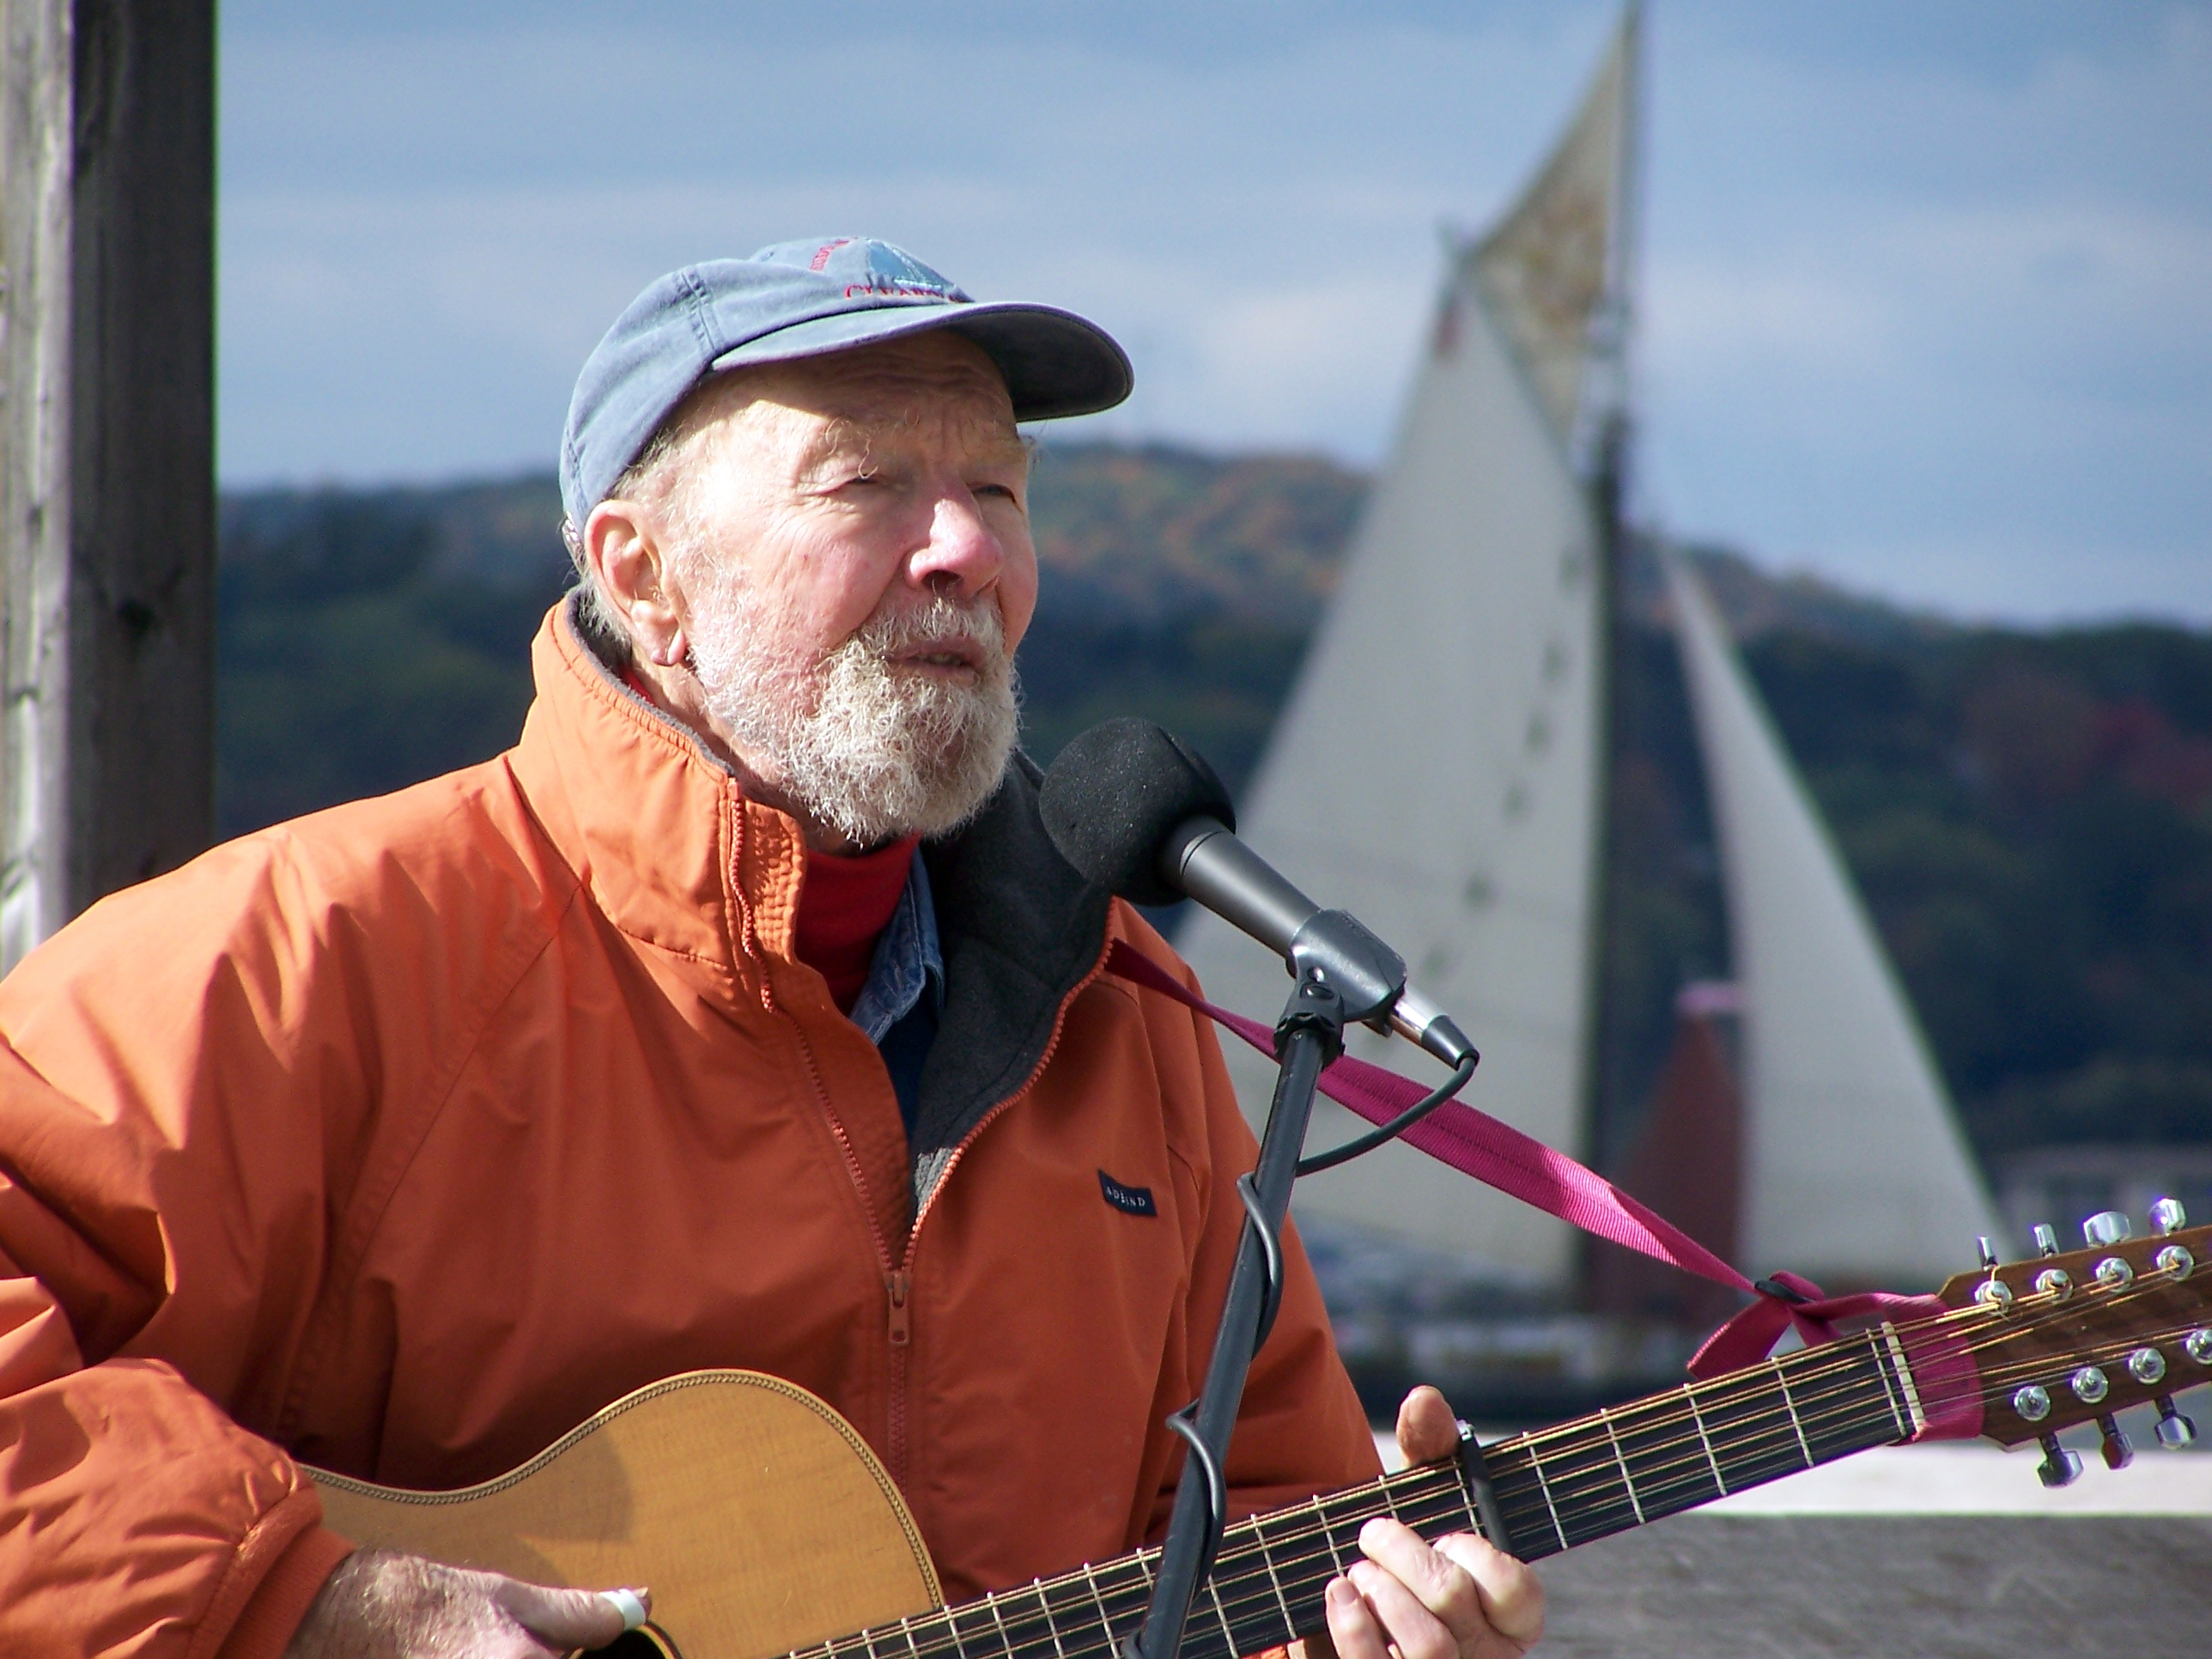 Pete Seeger performing at the Clearwater Festival, the festival he founded.